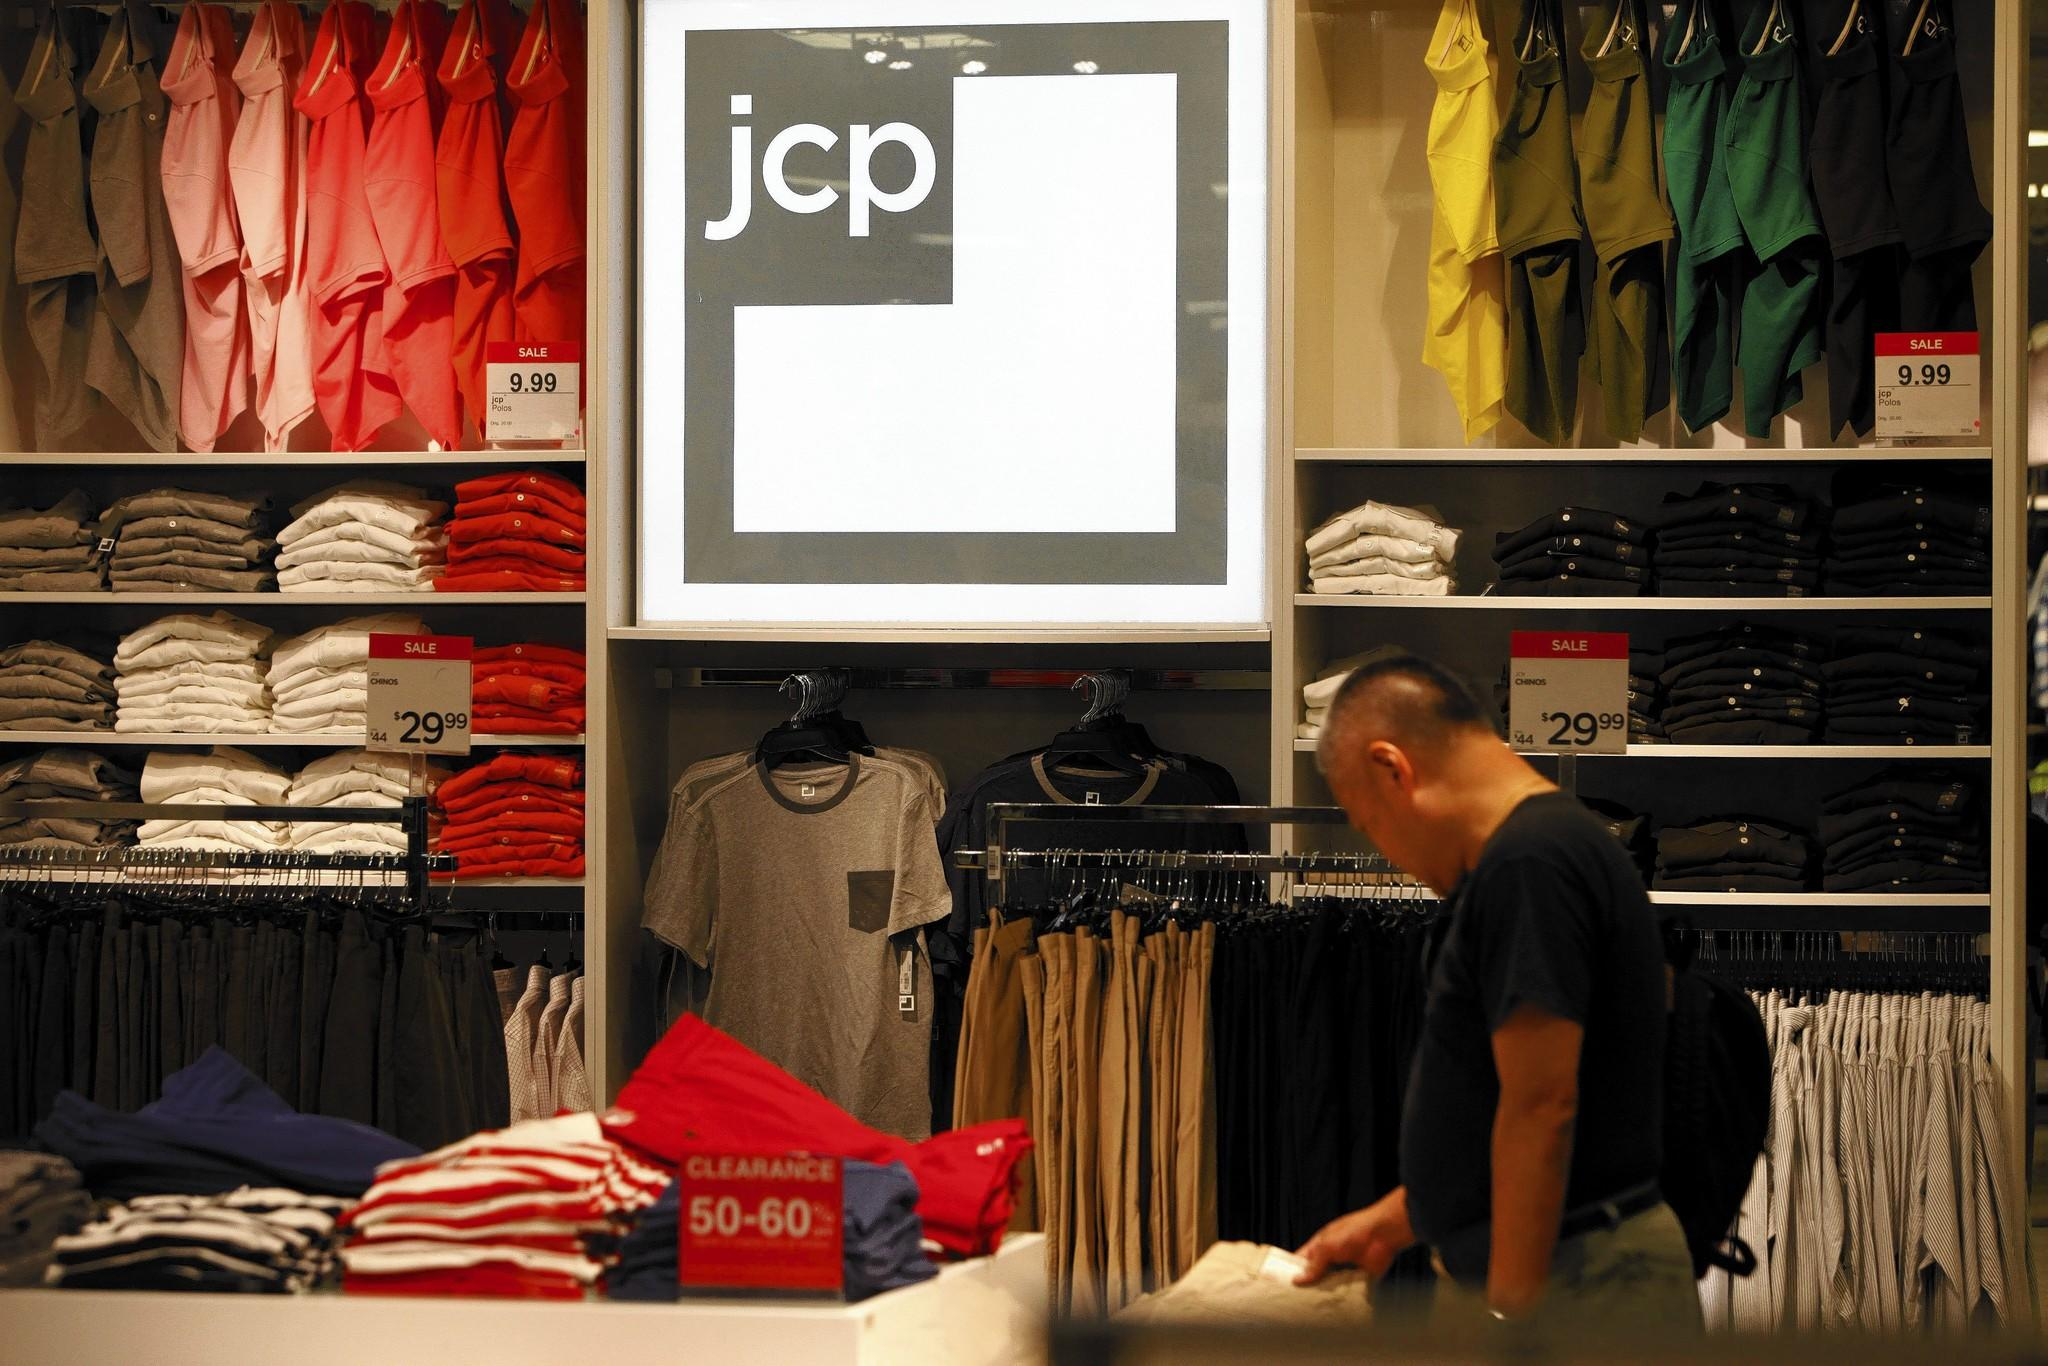 A man looks at clothing in a J.C. Penney store at the Glendale Galleria shopping center.